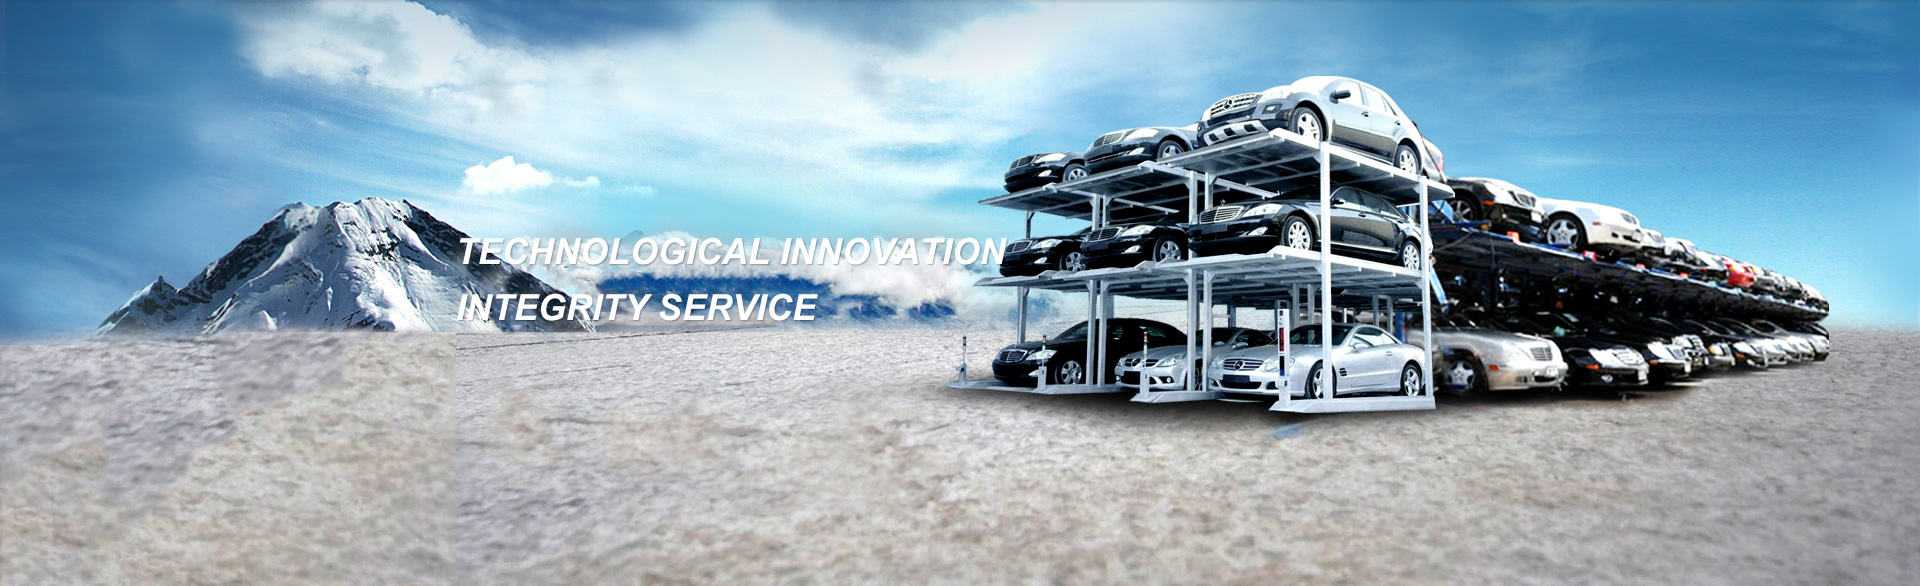 Technological Innovation       Integrity Service